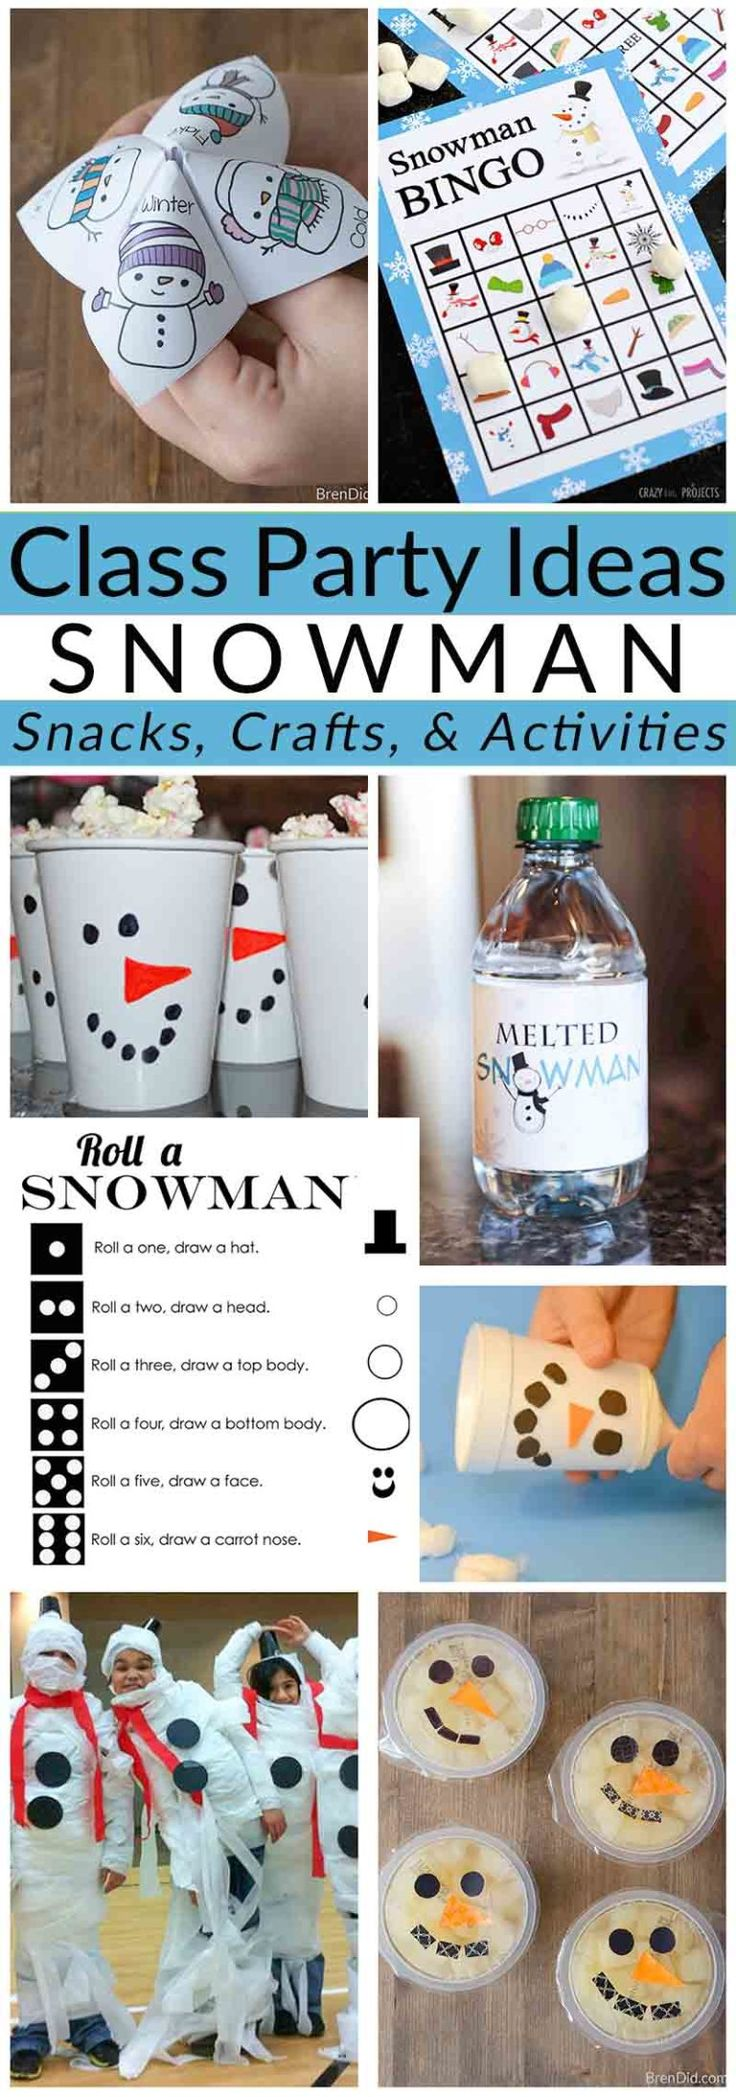 Class Party Ideas: Winter Snowman Party - Activities & Crafts for Elementary School Students | School Party | Snowman Party | Healthy Snacks for Kids | School Party Ideas #holidayparty #classparty #kidsparty